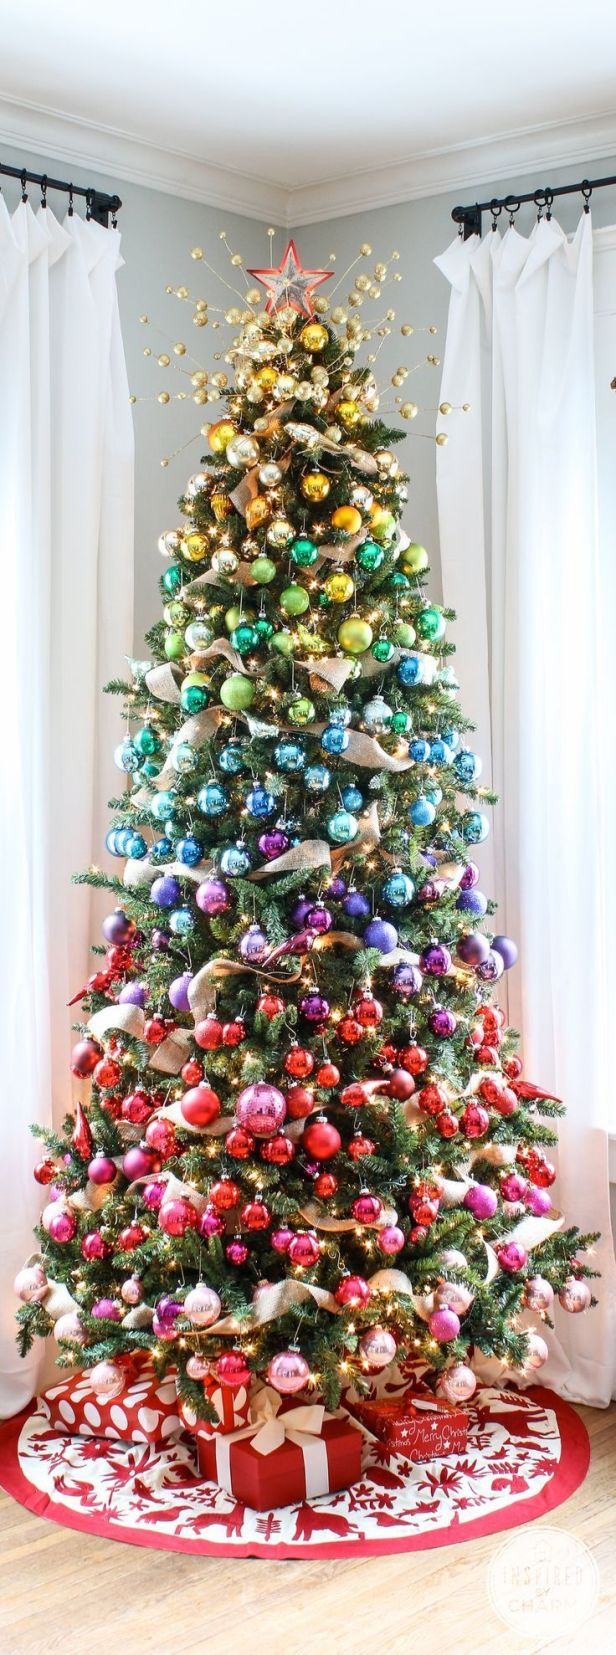 Color schemes for christmas trees - So How Do You Decide On What Colors To Use In Your Holiday Decorating Scheme Are You A Traditionalist Or The More Daring And Artistic Type